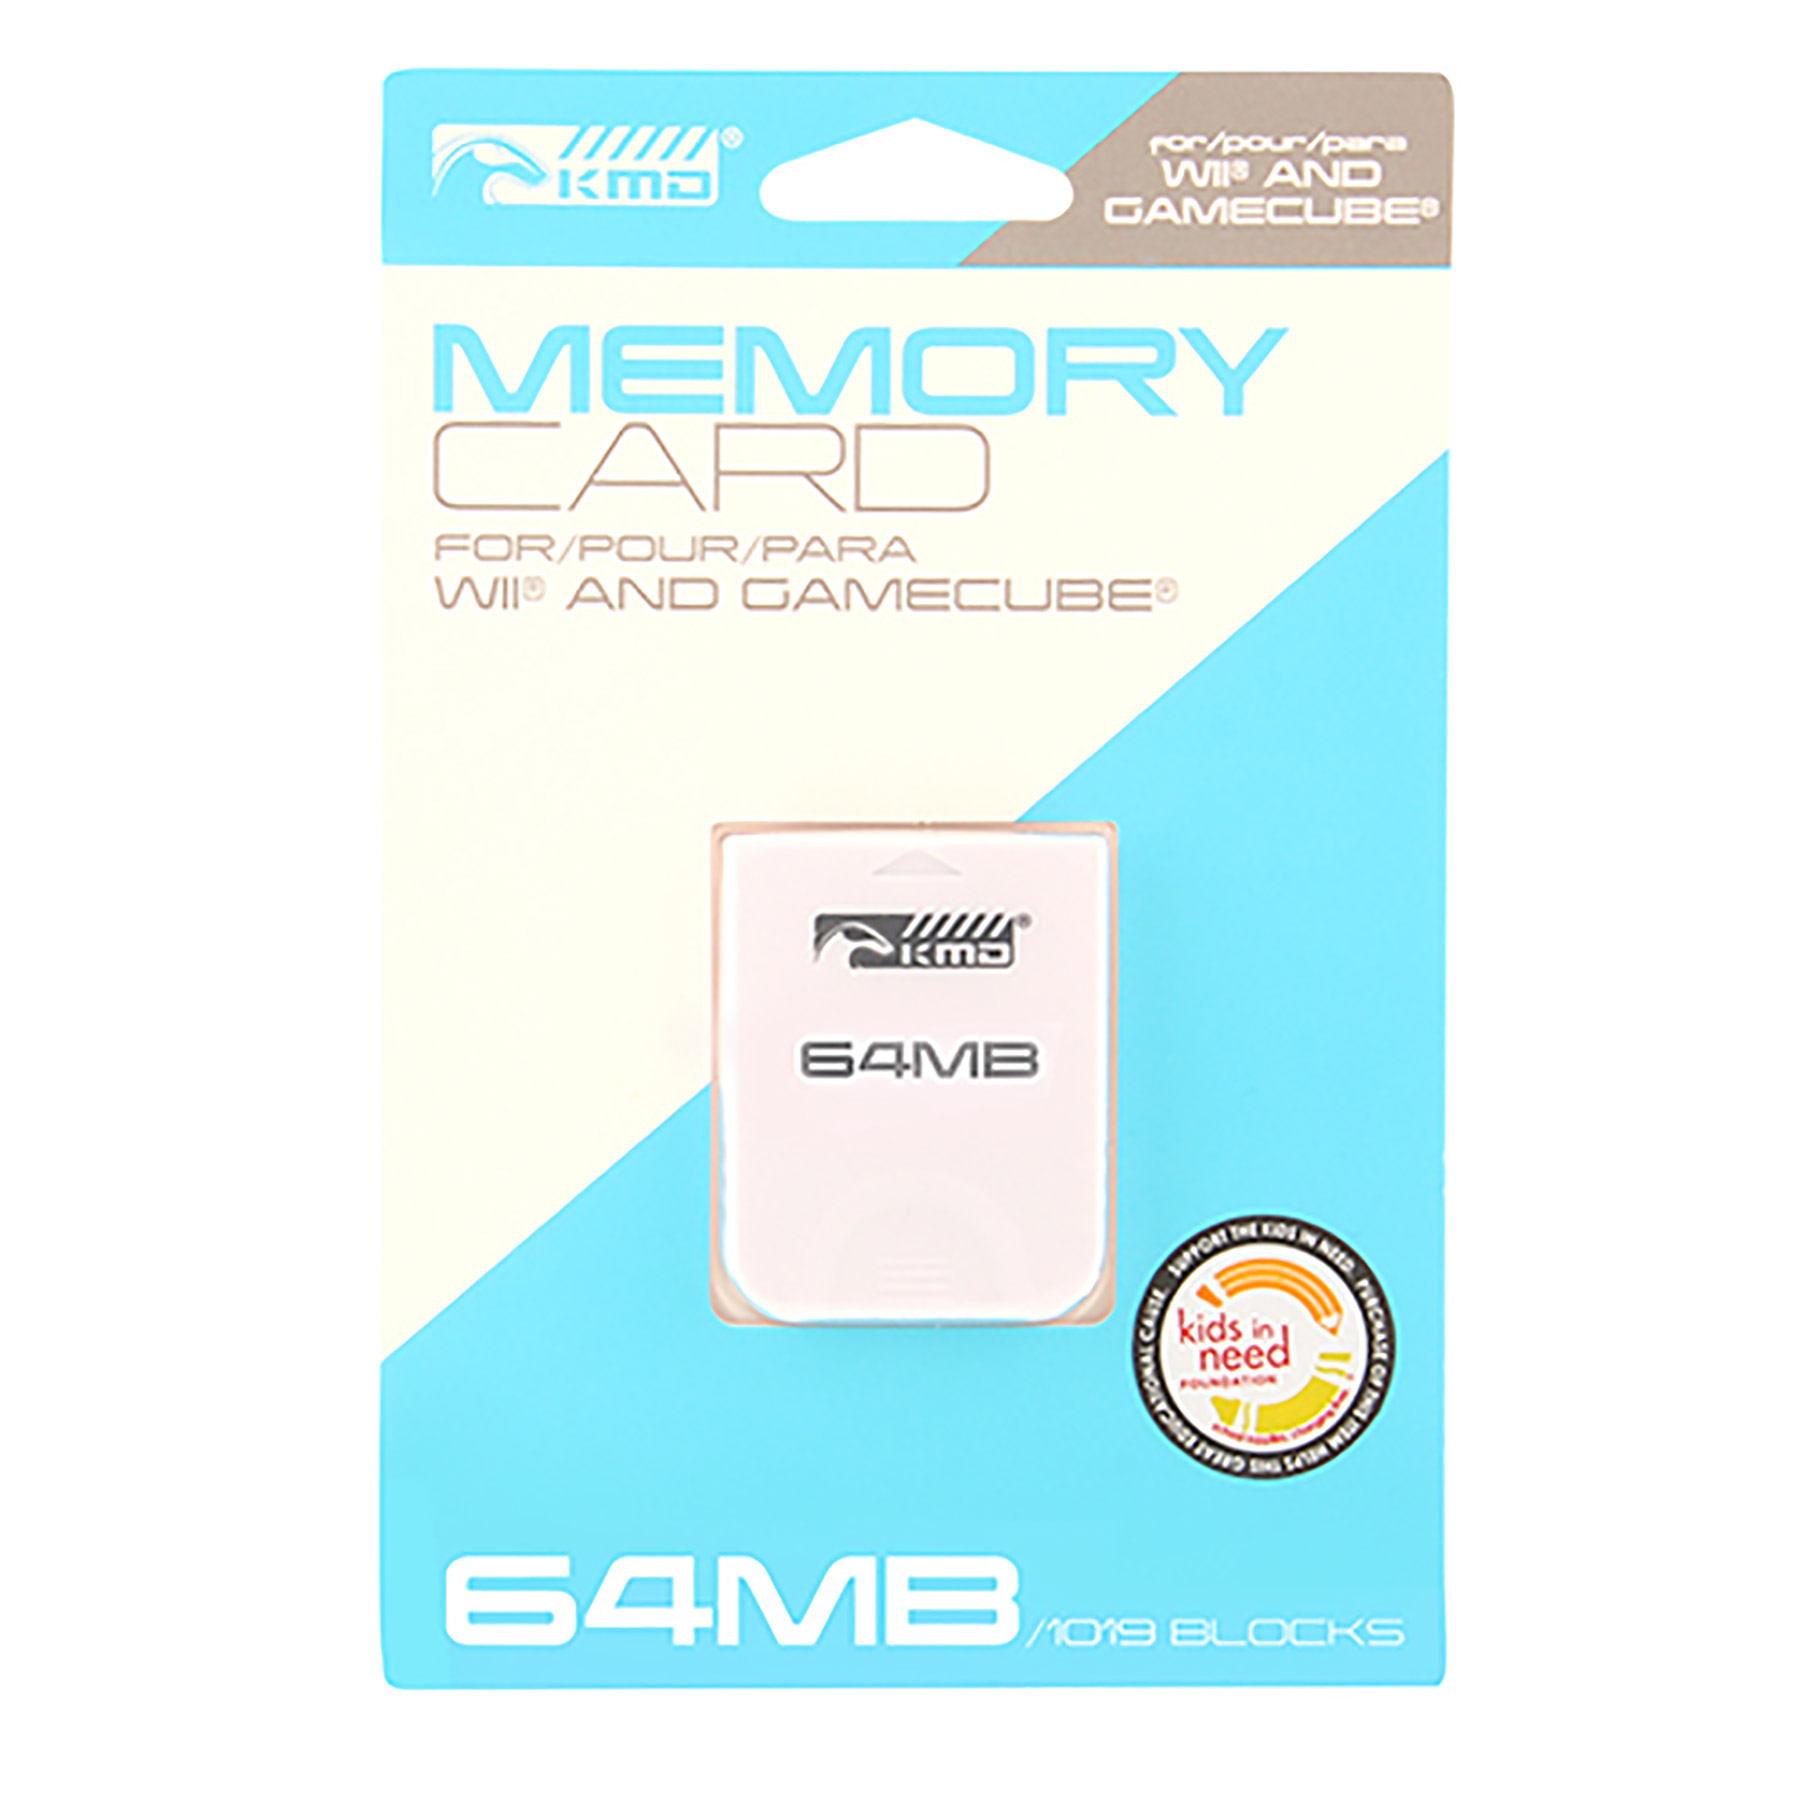 Wii Gamecube Memory Card 64MB 1019 Blocks KMD Game World